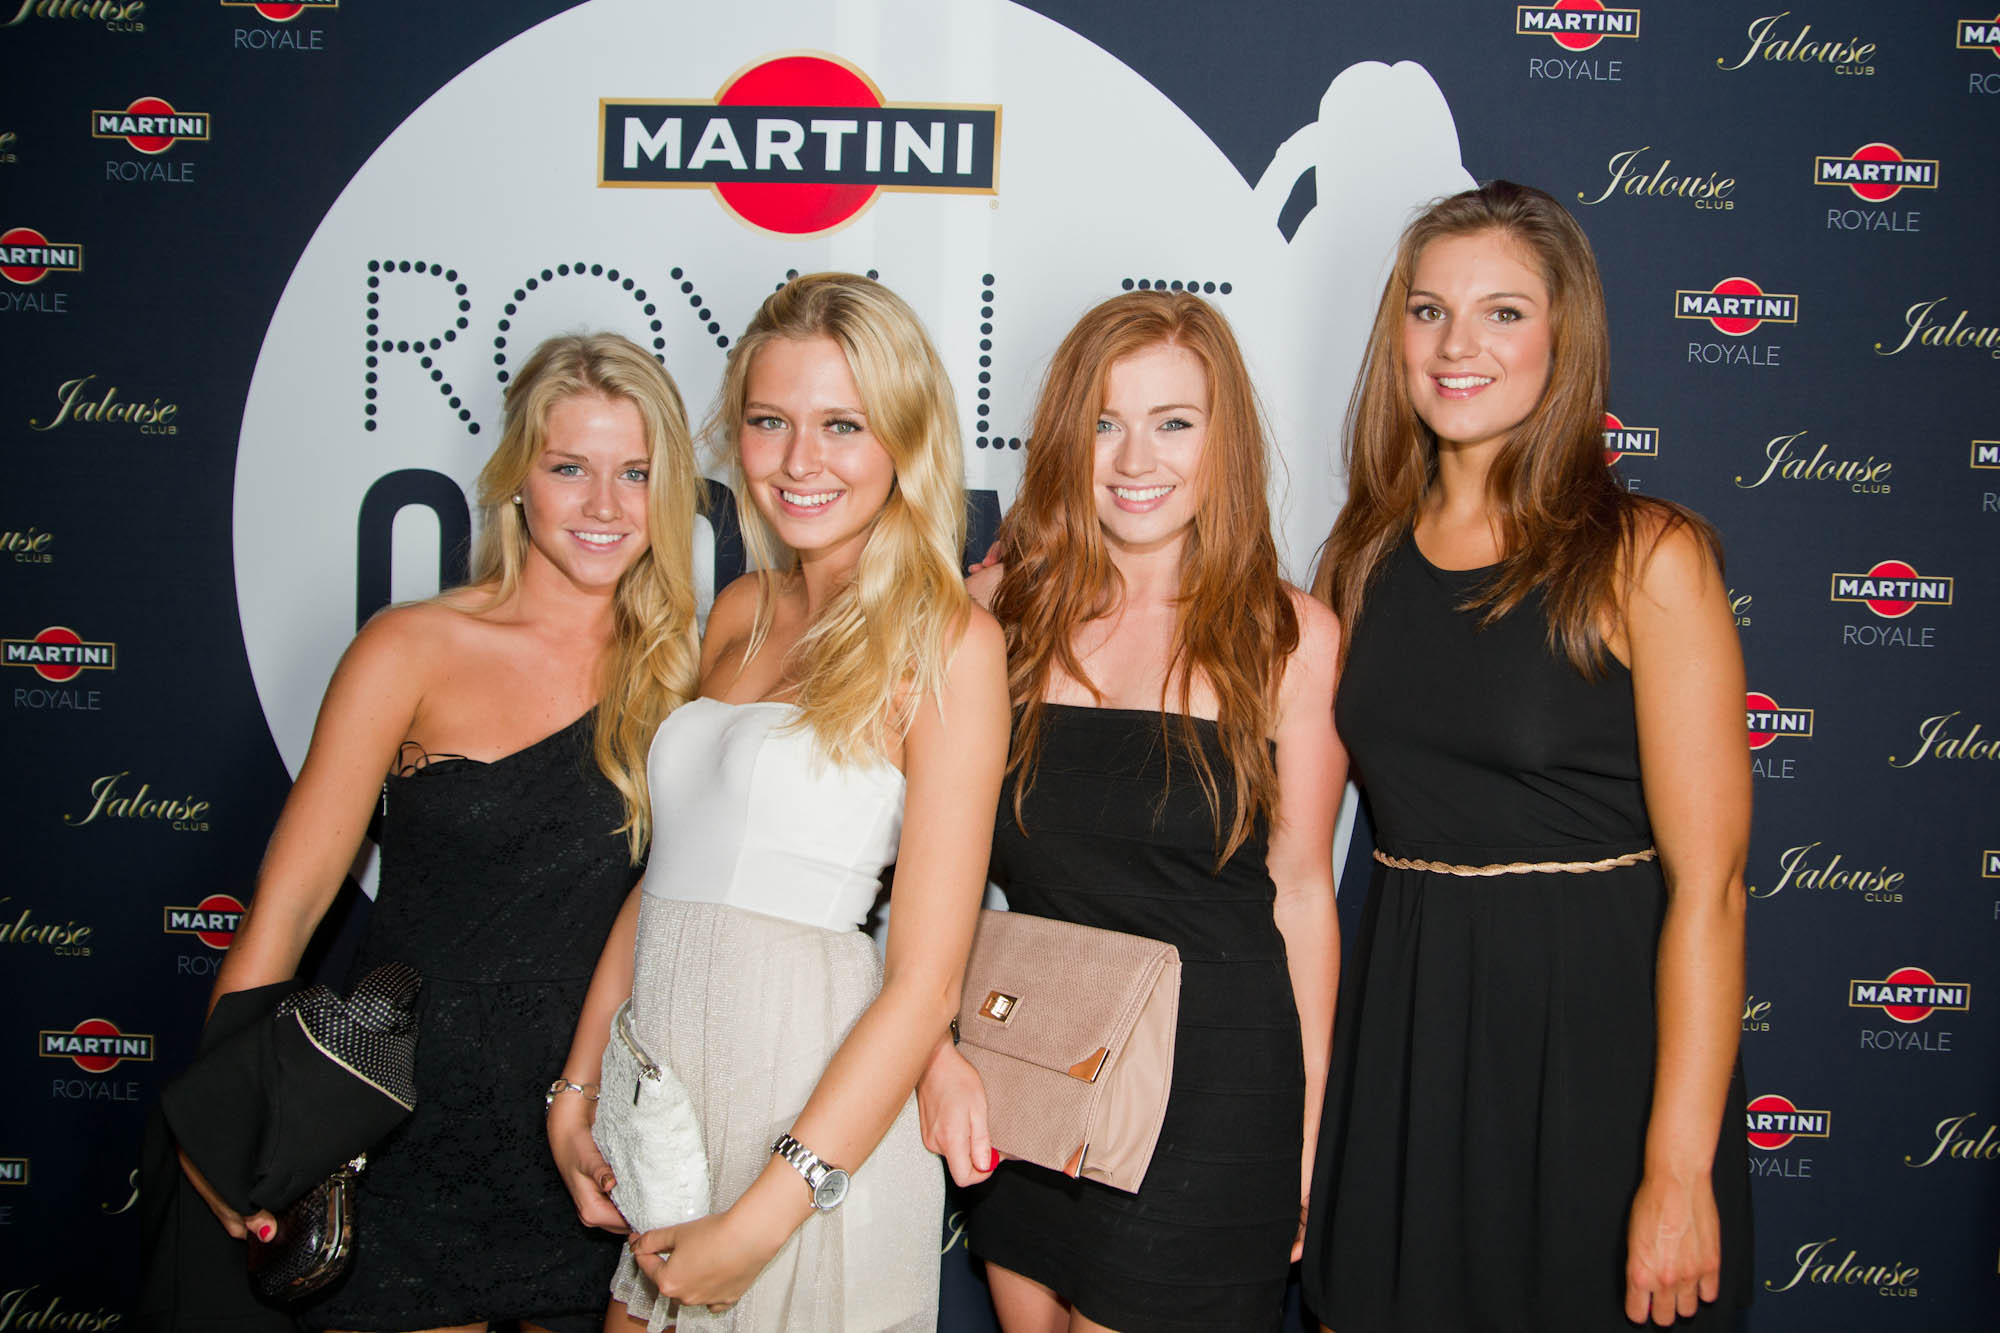 Martini Royale Casting, London